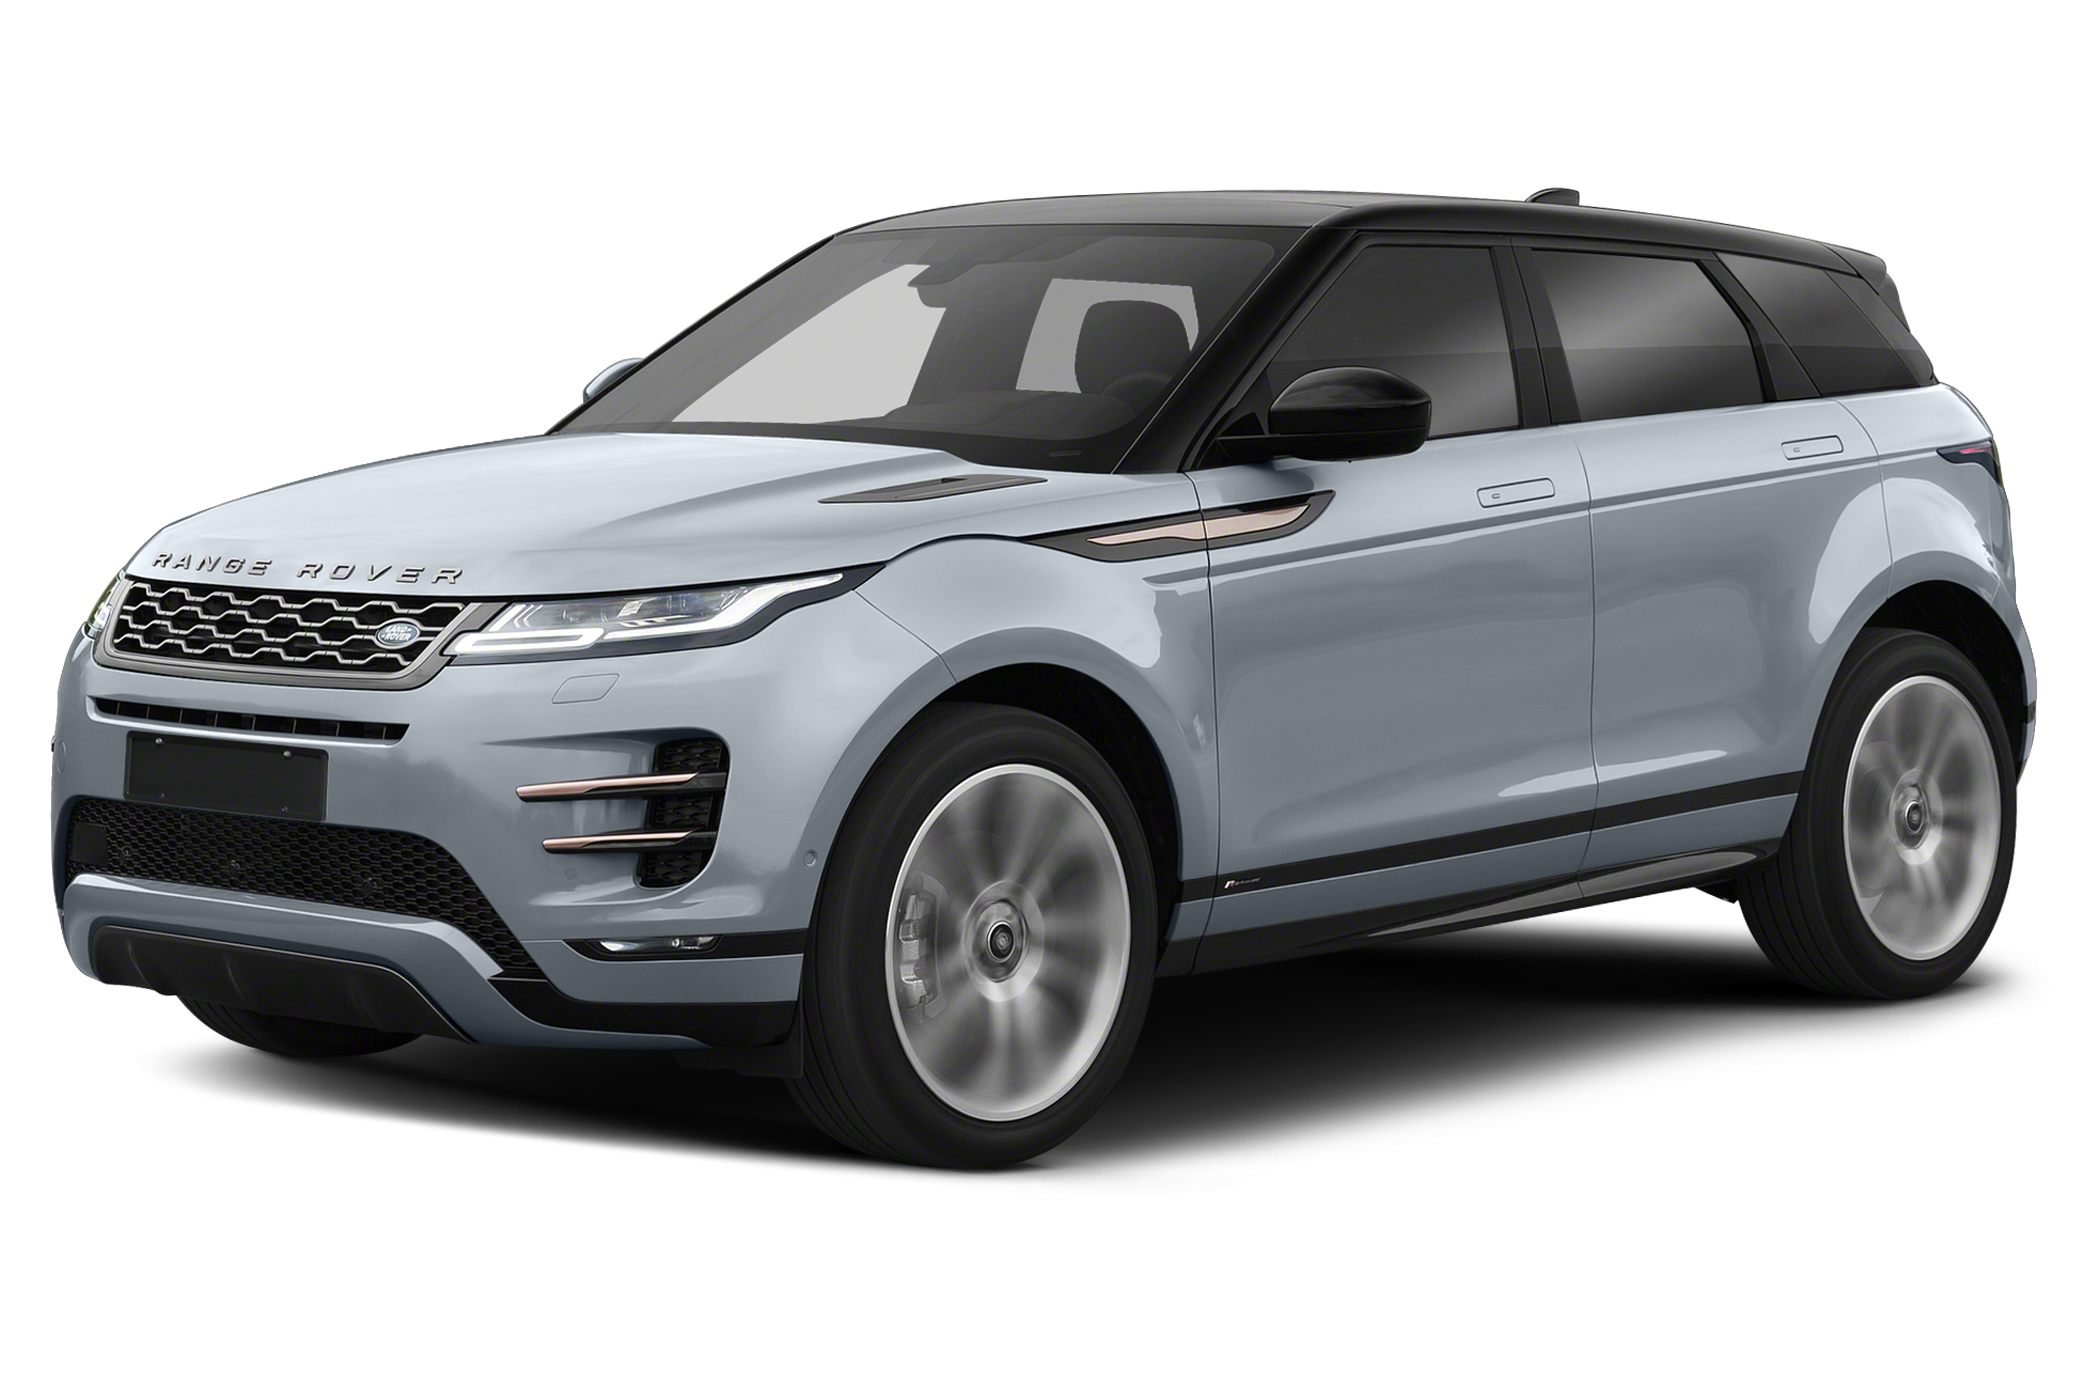 2020 Land Rover Range Rover Evoque First Edition All wheel Drive Equipment